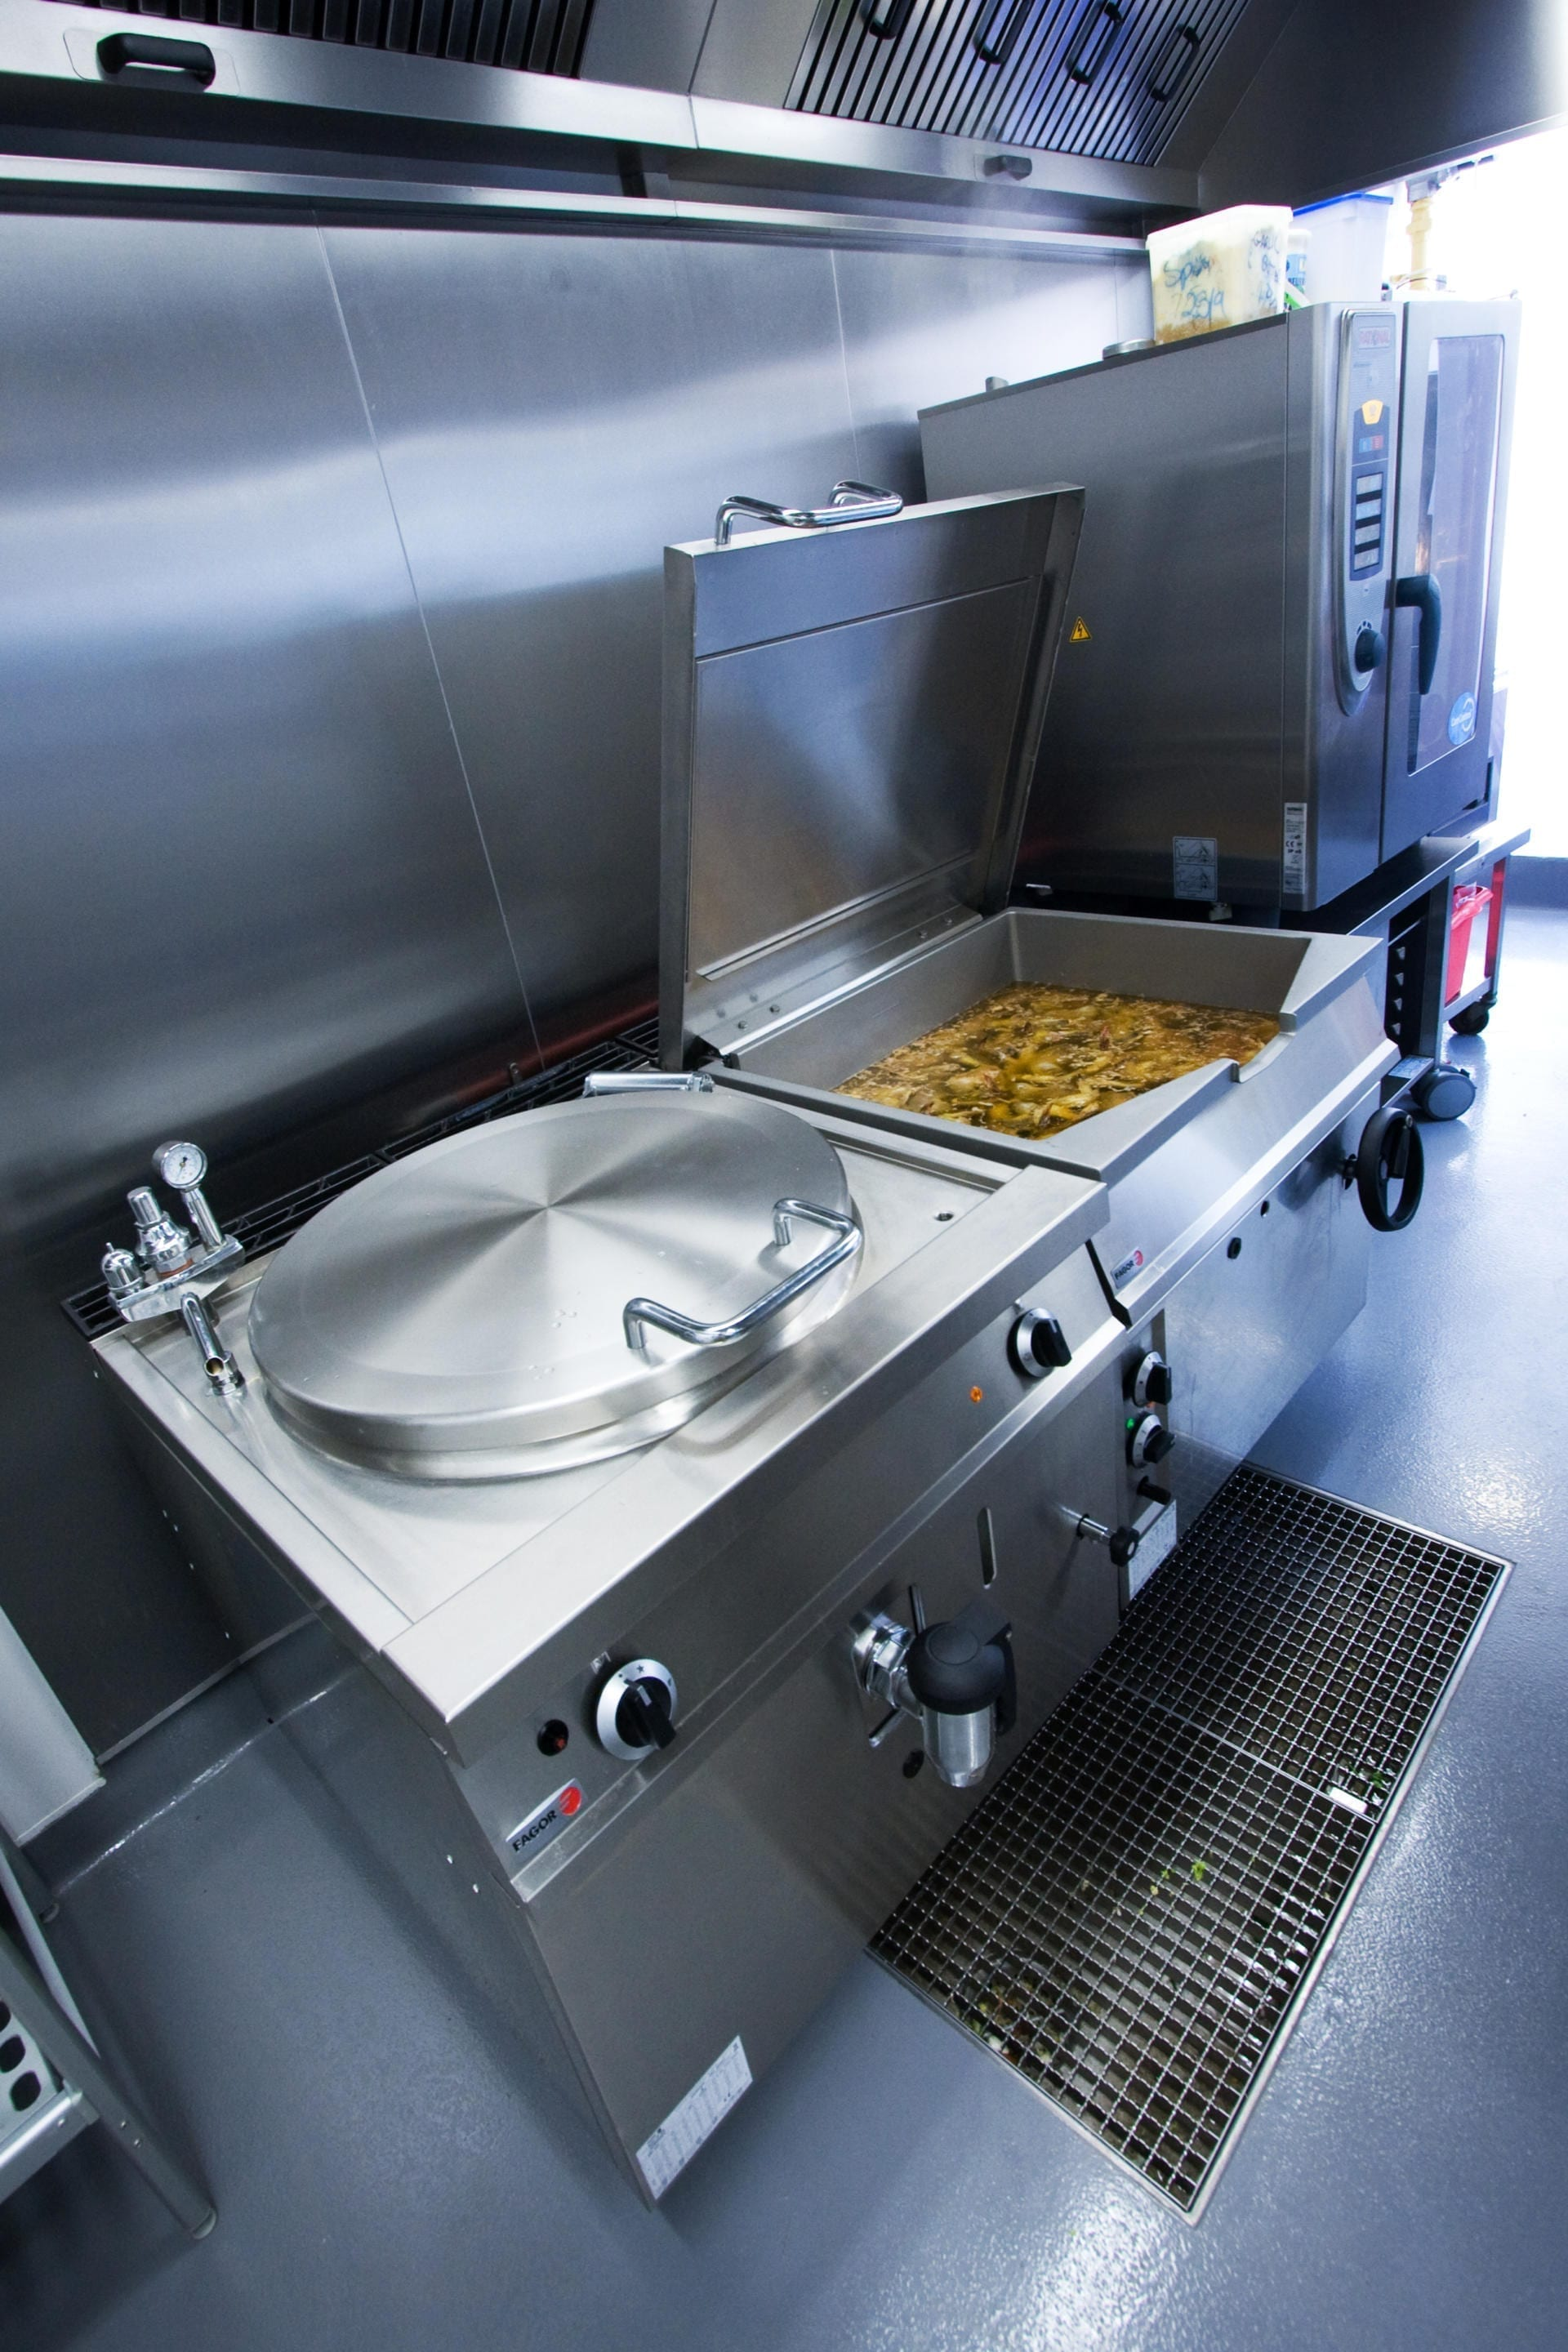 Ockenden-Manor-Hotel-Sussex-Restaurant-Kitchen-Fabrication-Stainless-Steel-Commercial-spacecatering_7